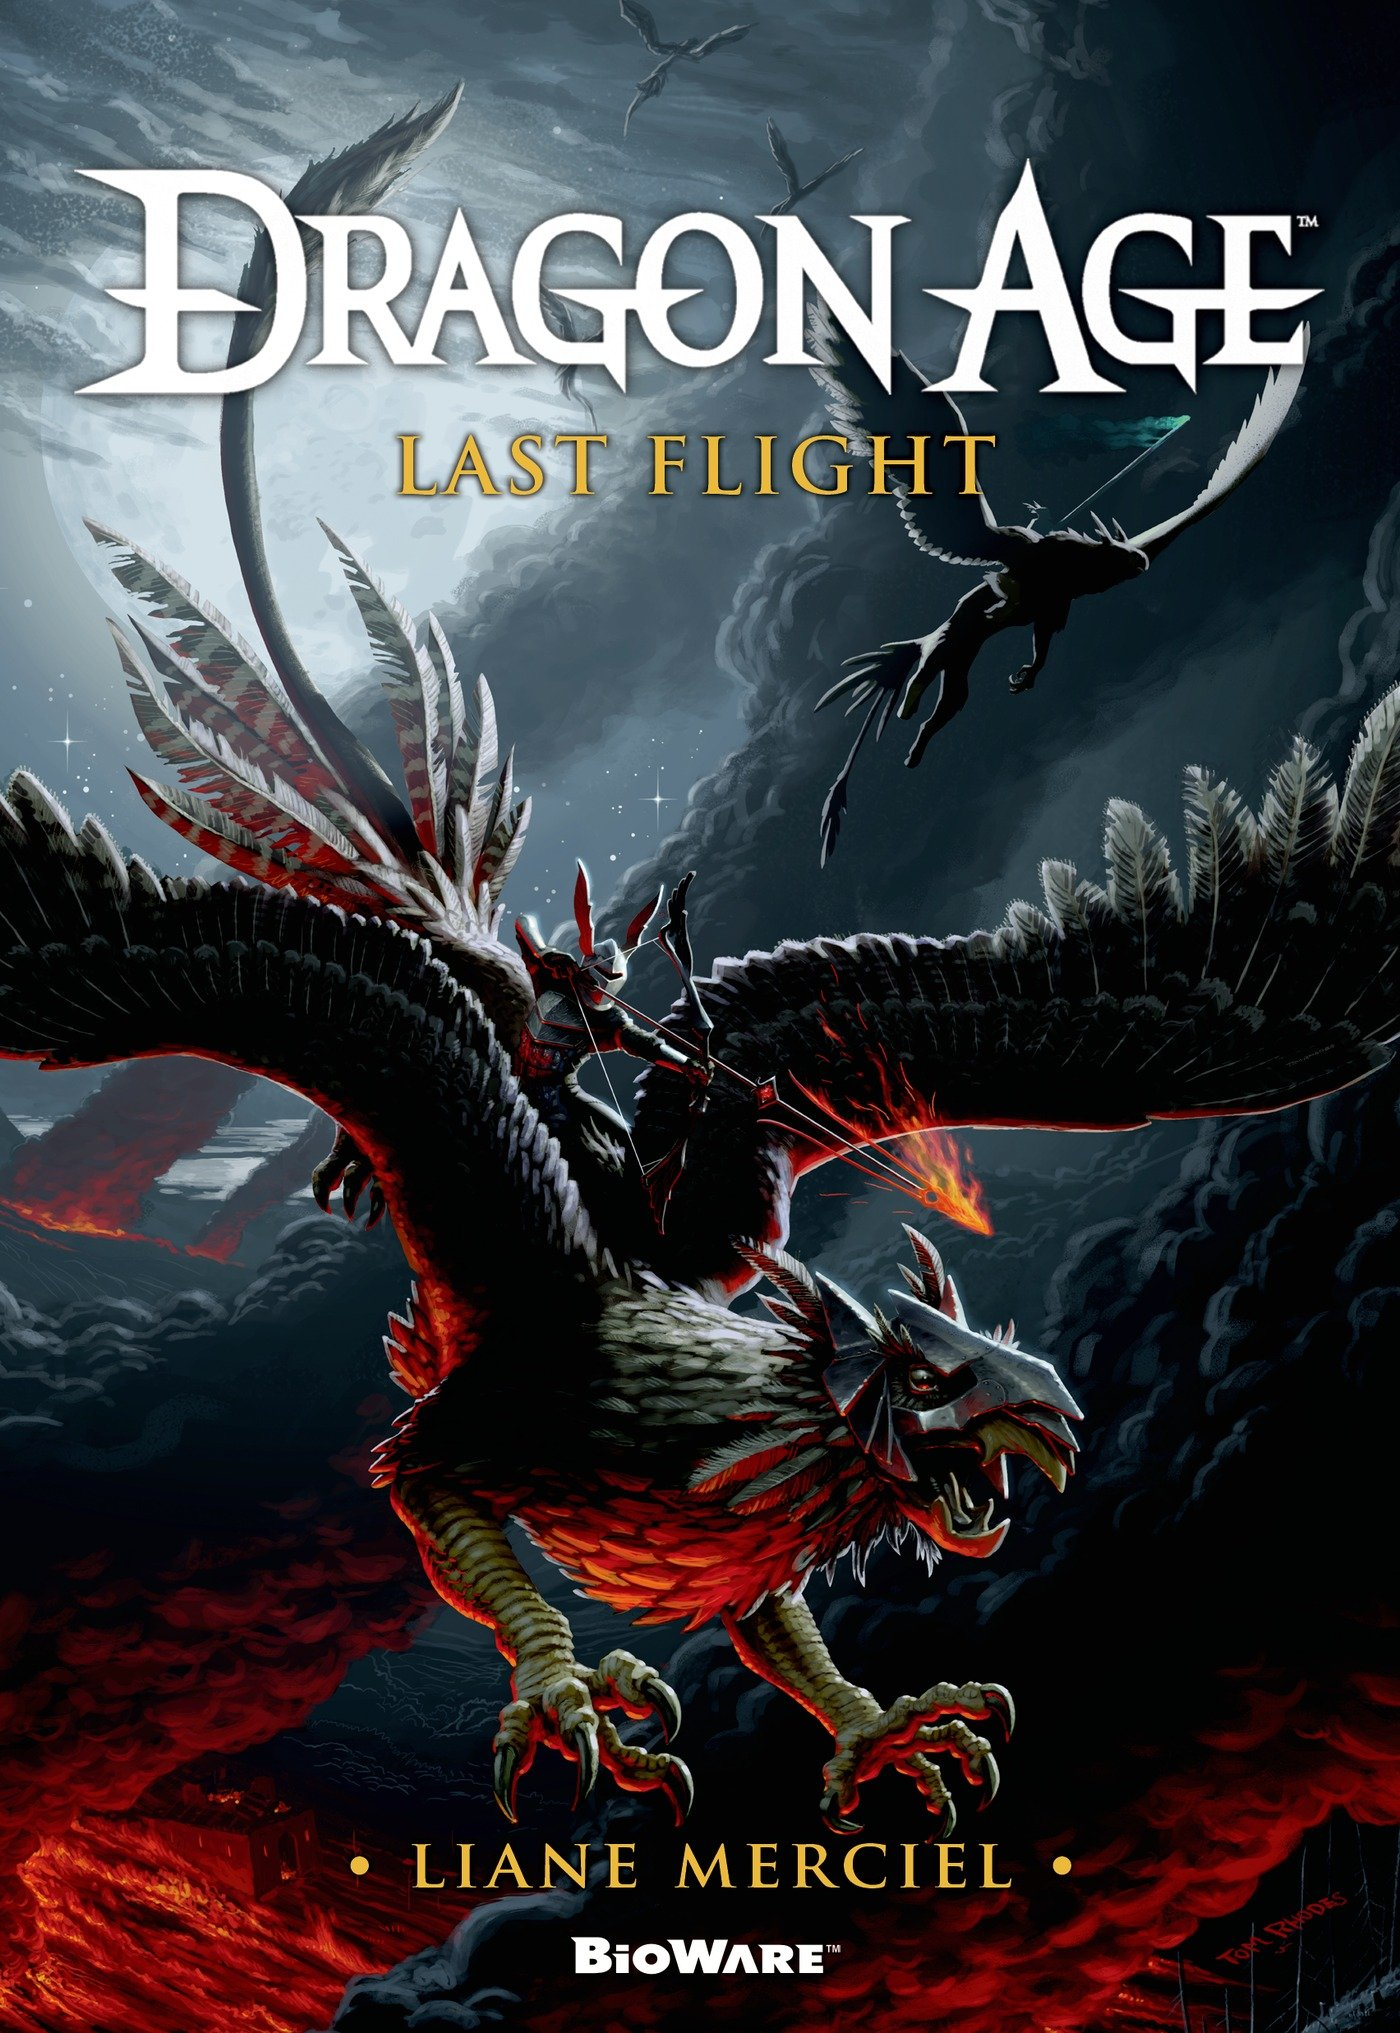 Dragon Age: Last Flight